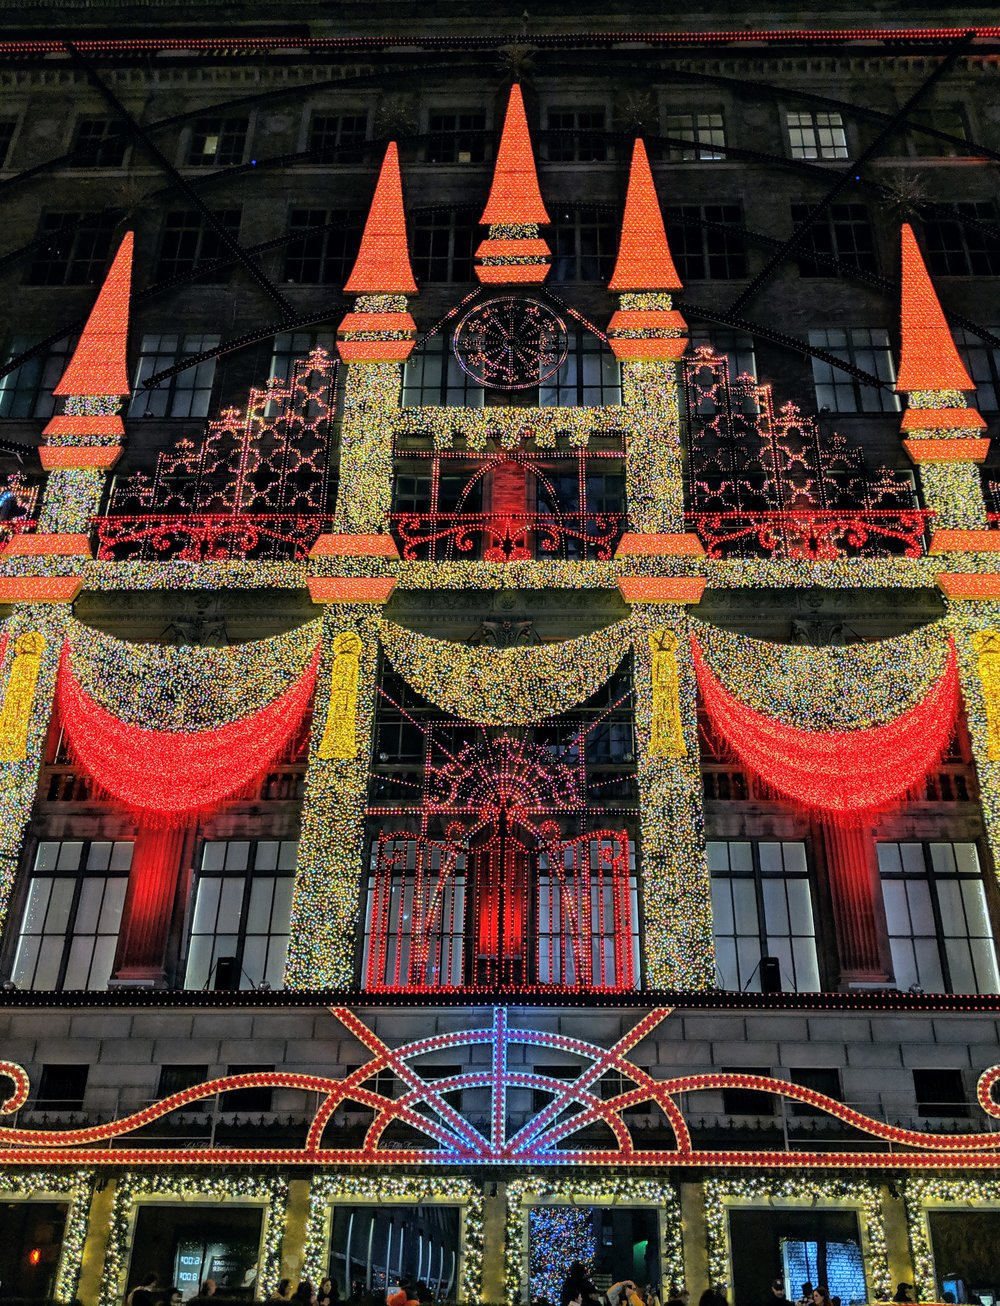 Sak's Fifth Avenue on 5th Ave. - this was a shot from the light show. Super Christmas-y and festive!